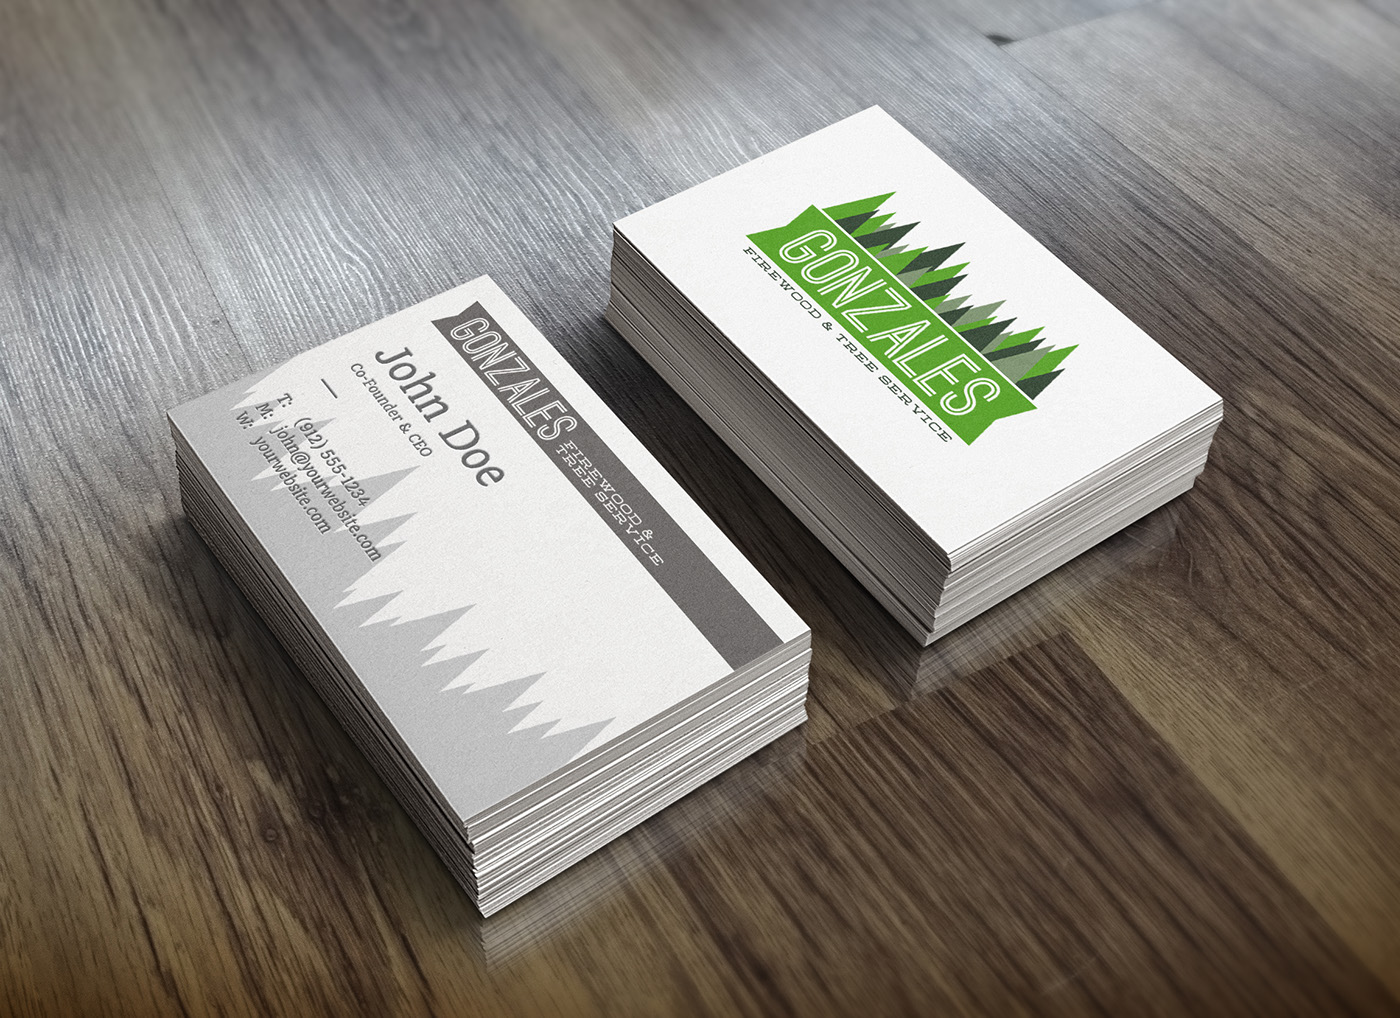 gonzales firewood tree service business cards on behance - Tree Service Business Cards